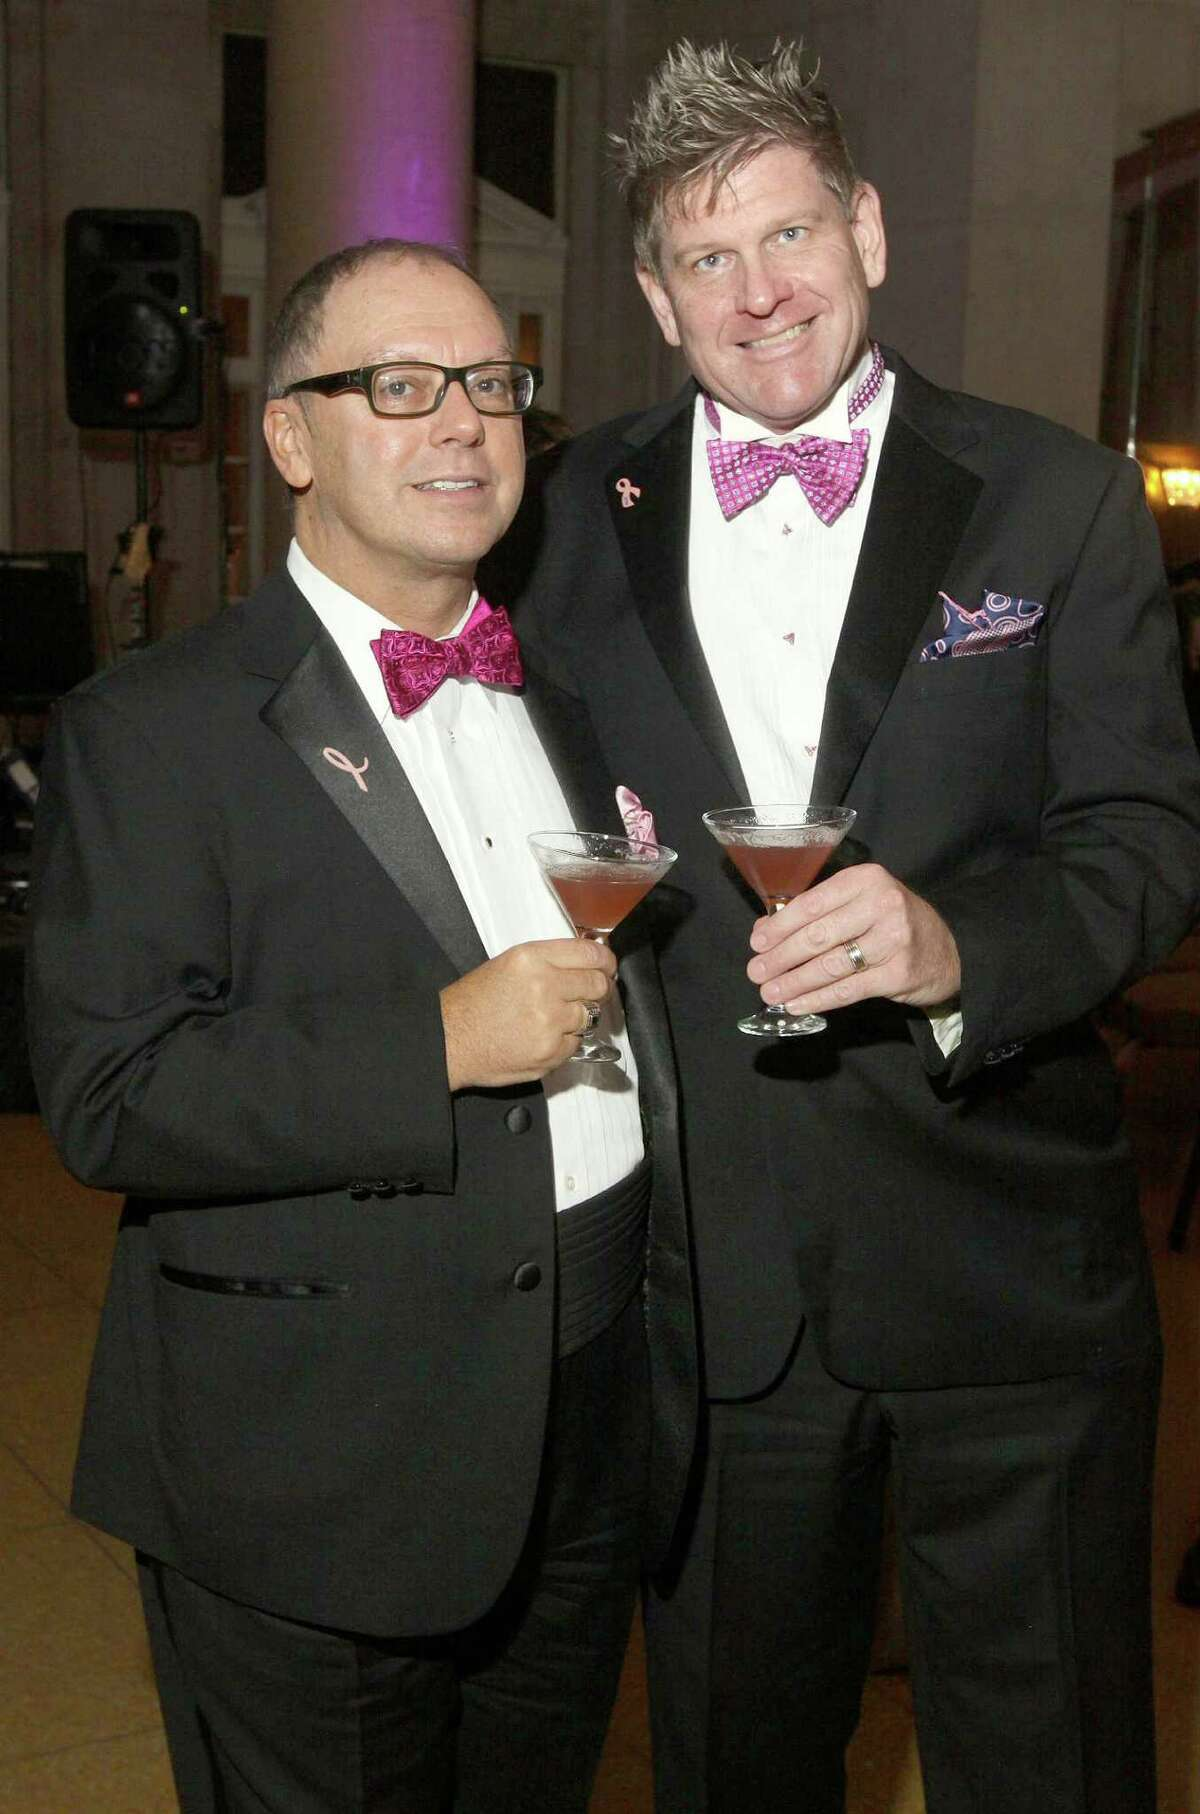 Were you Seen at the Eight Annual Pink Ball to benefit the To Life! breast cancer support organization at the Hall of Springs in Saratoga Springs on Friday, October 26, 2012?